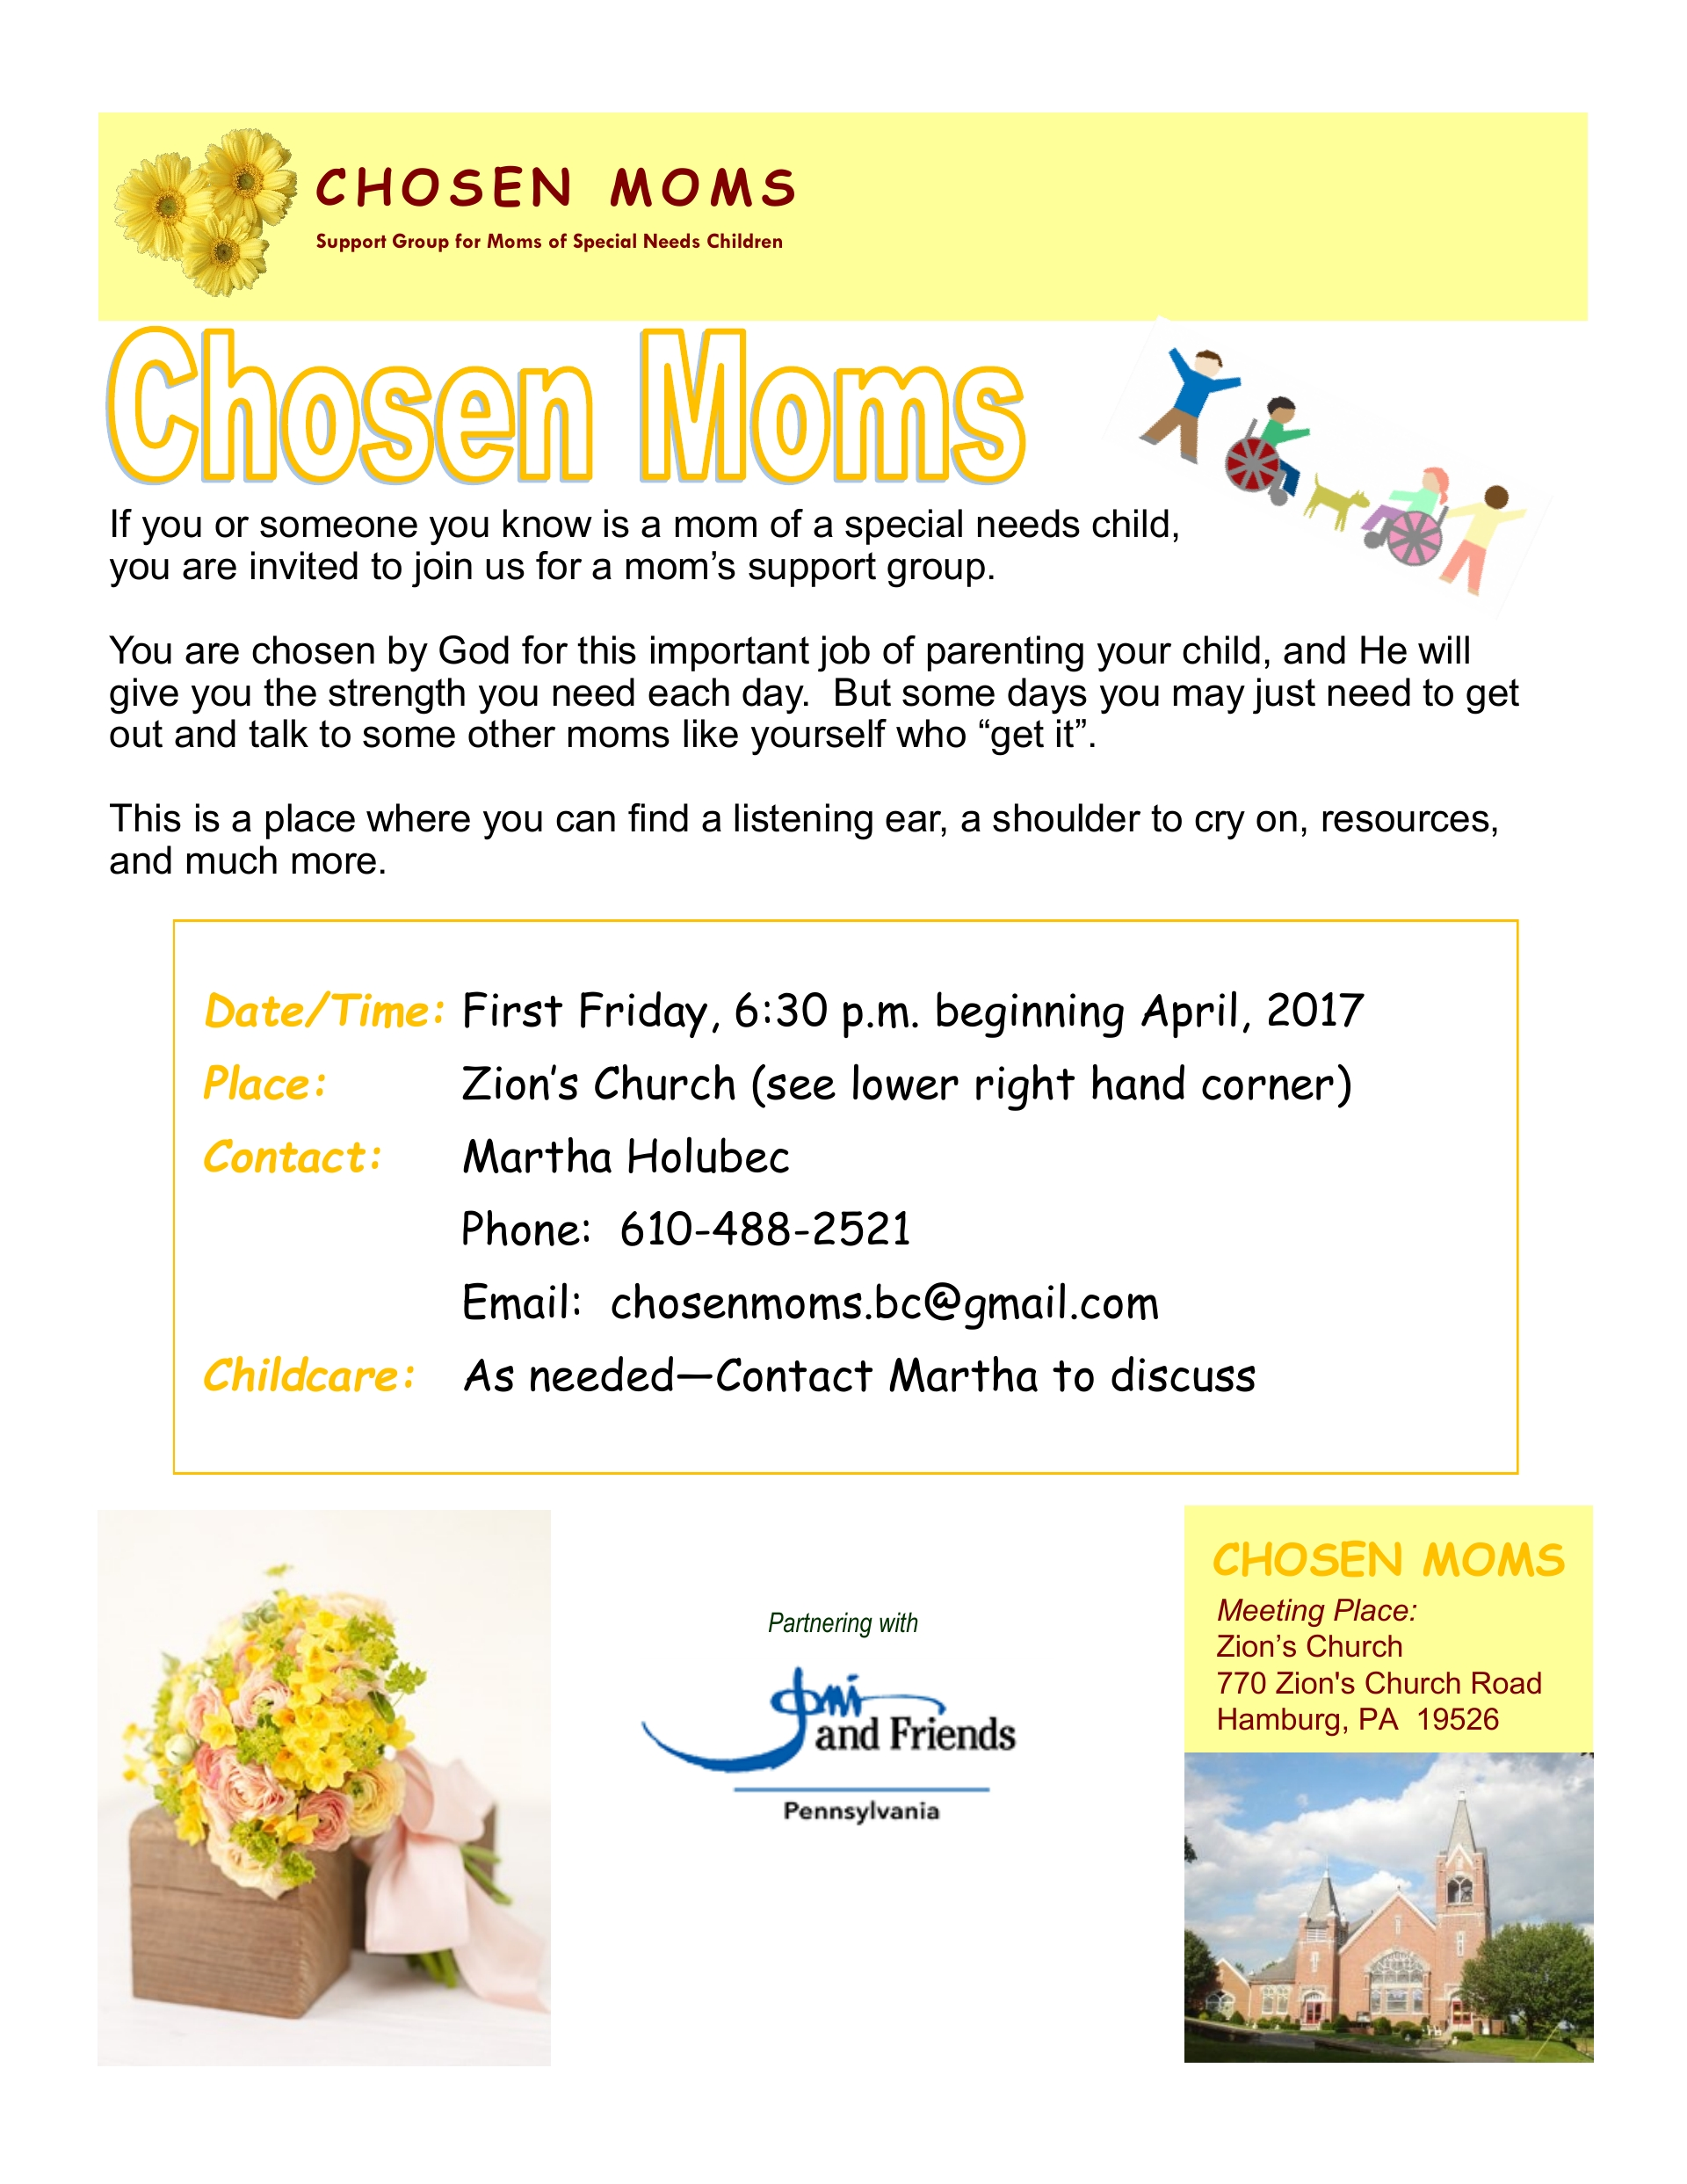 CHOSEN MOMS SUPPORT GROUP  (Moms of children with special needs)